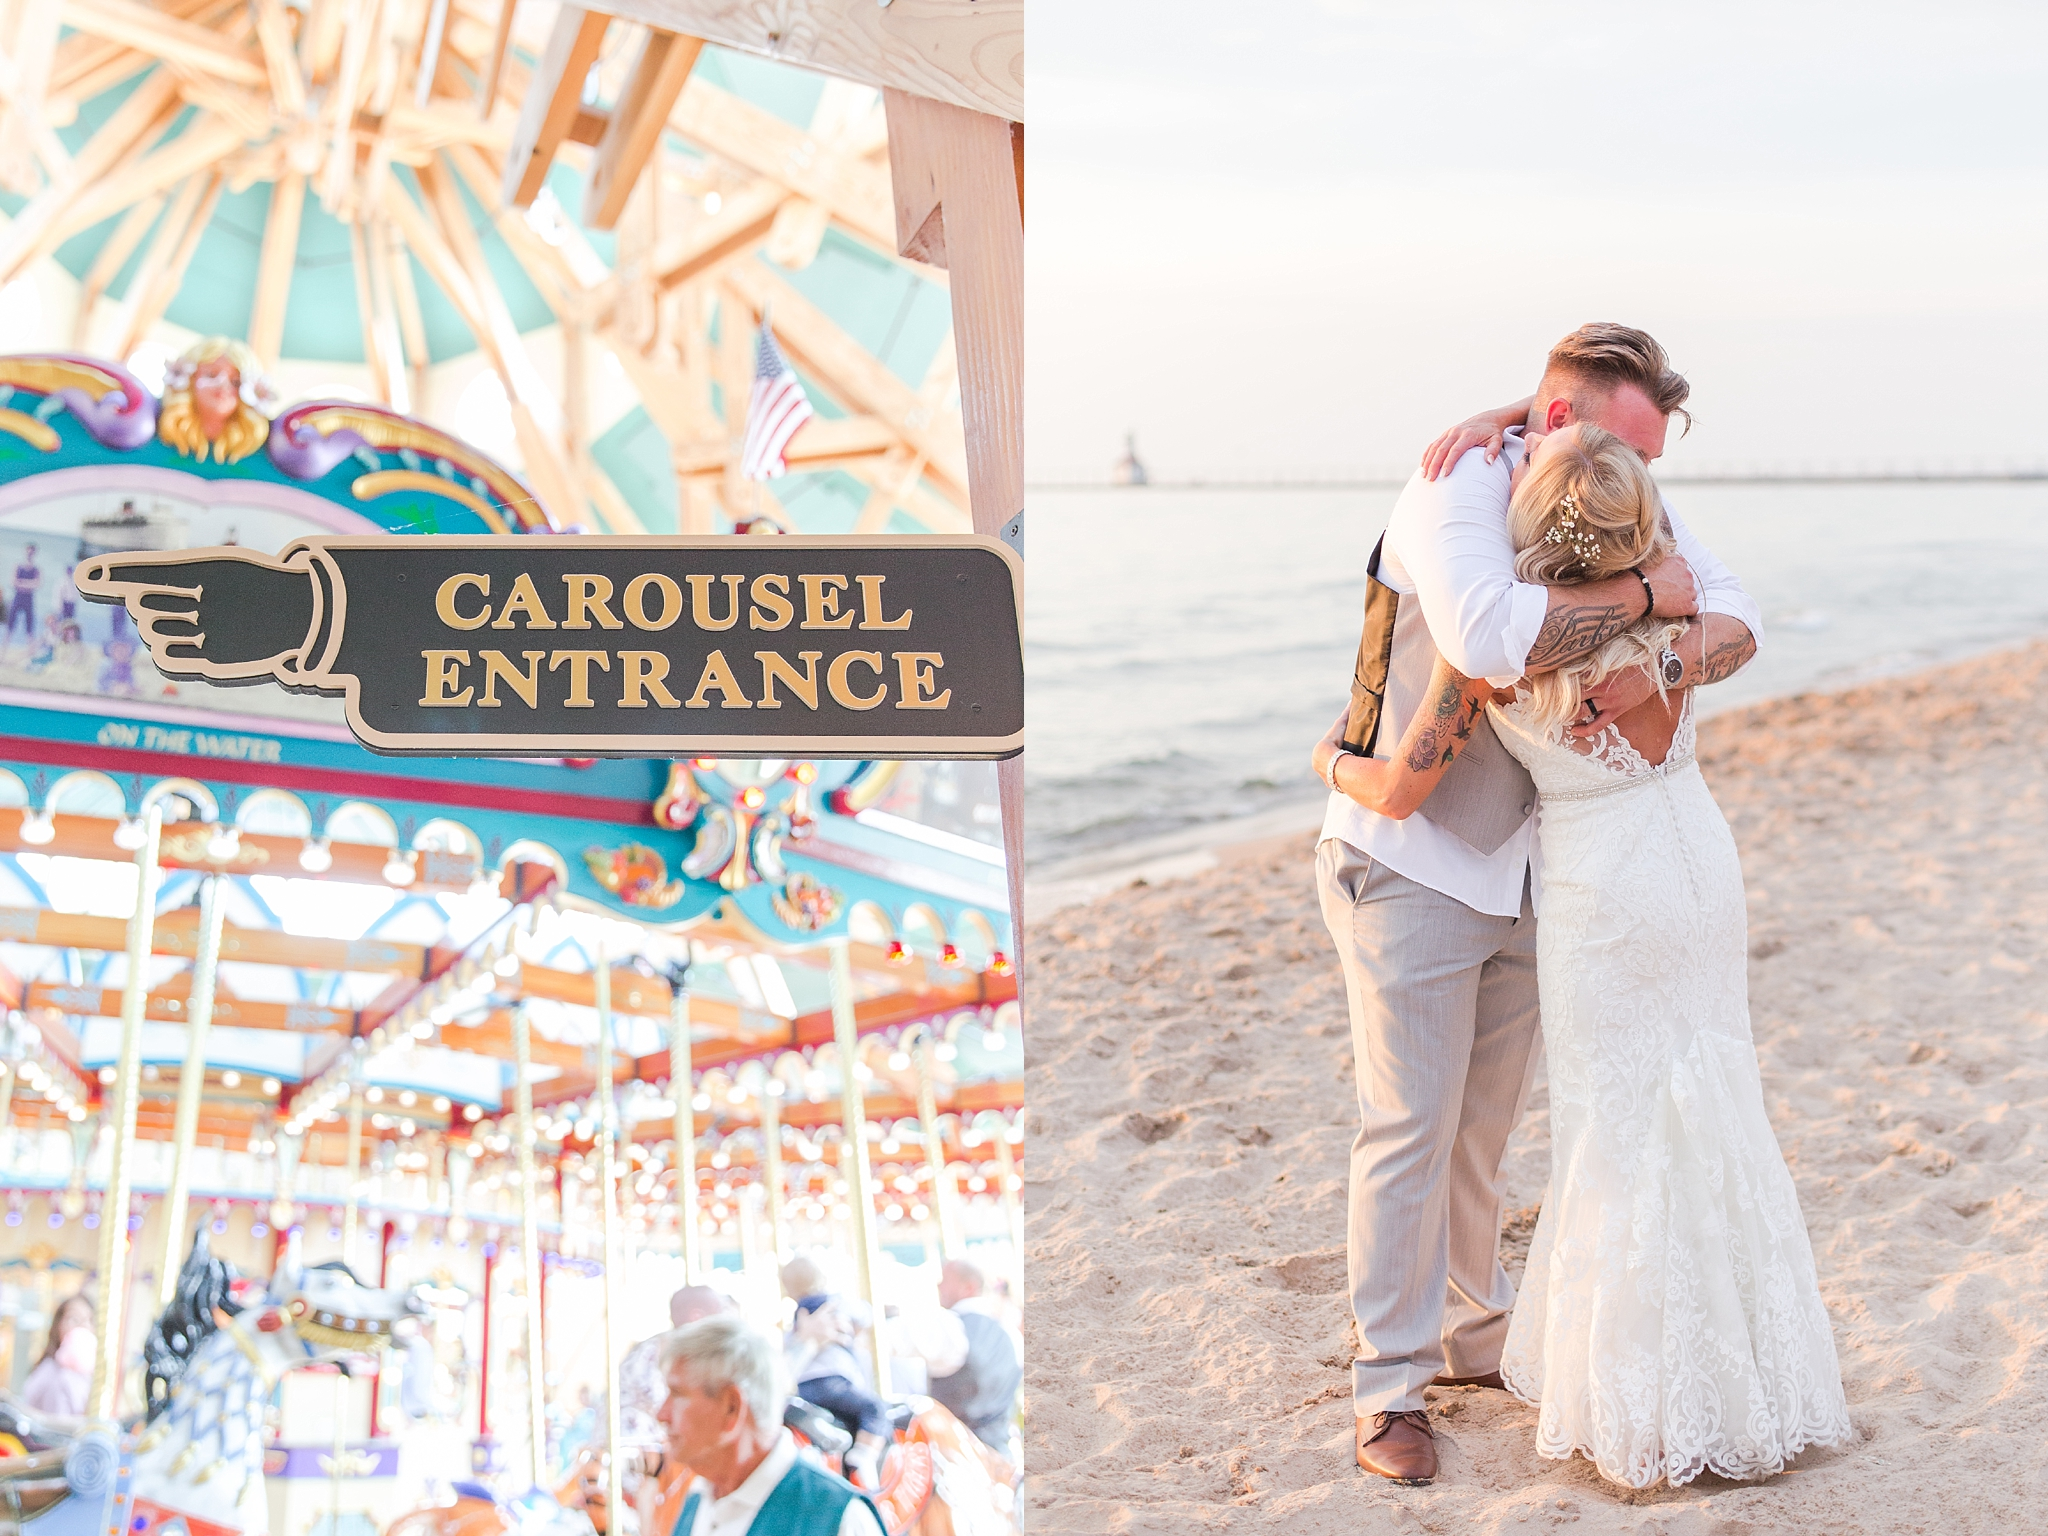 romantic-artful-candid-wedding-photos-in-detroit-lansing-ann-arbor-northern-michigan-and-chicago-by-courtney-carolyn-photography_0093.jpg